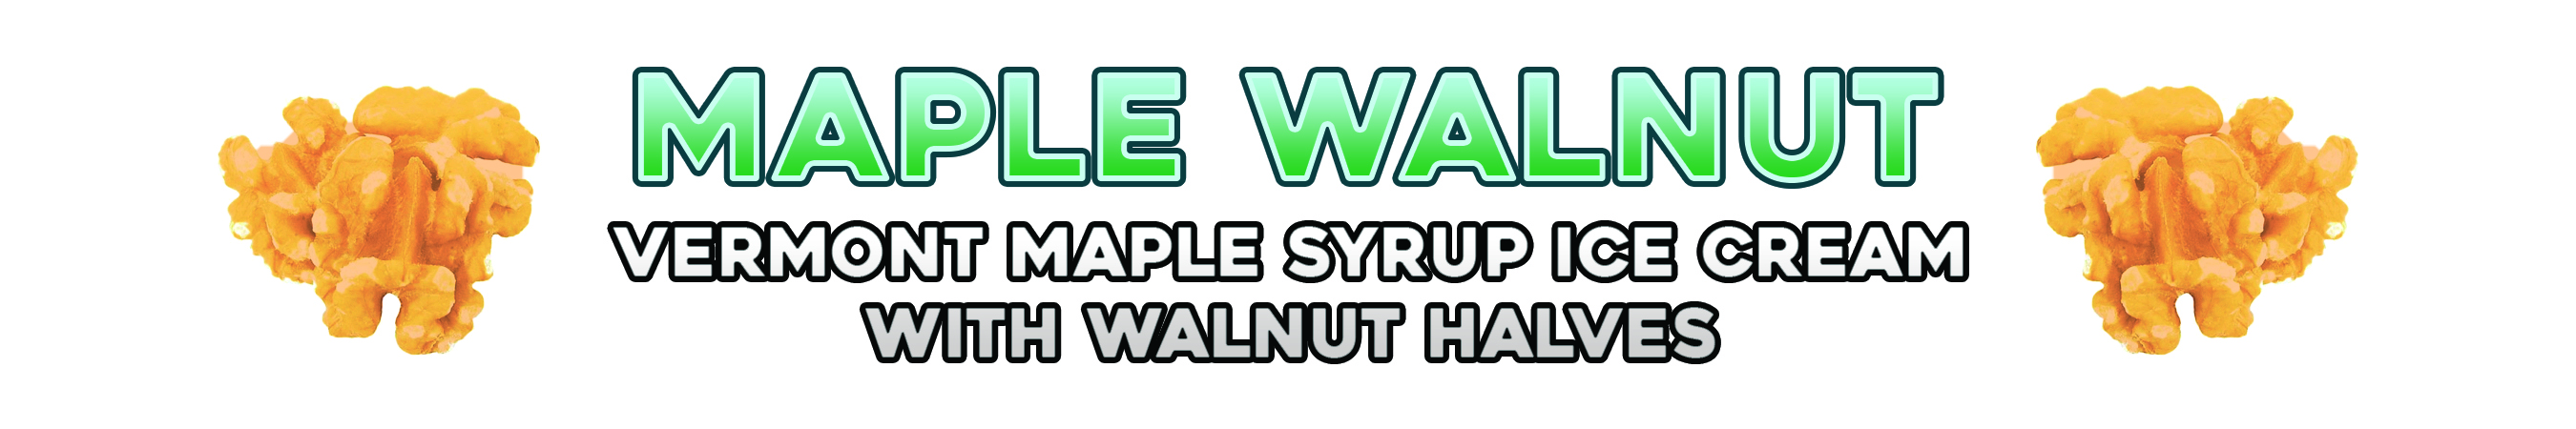 MapleWalnut